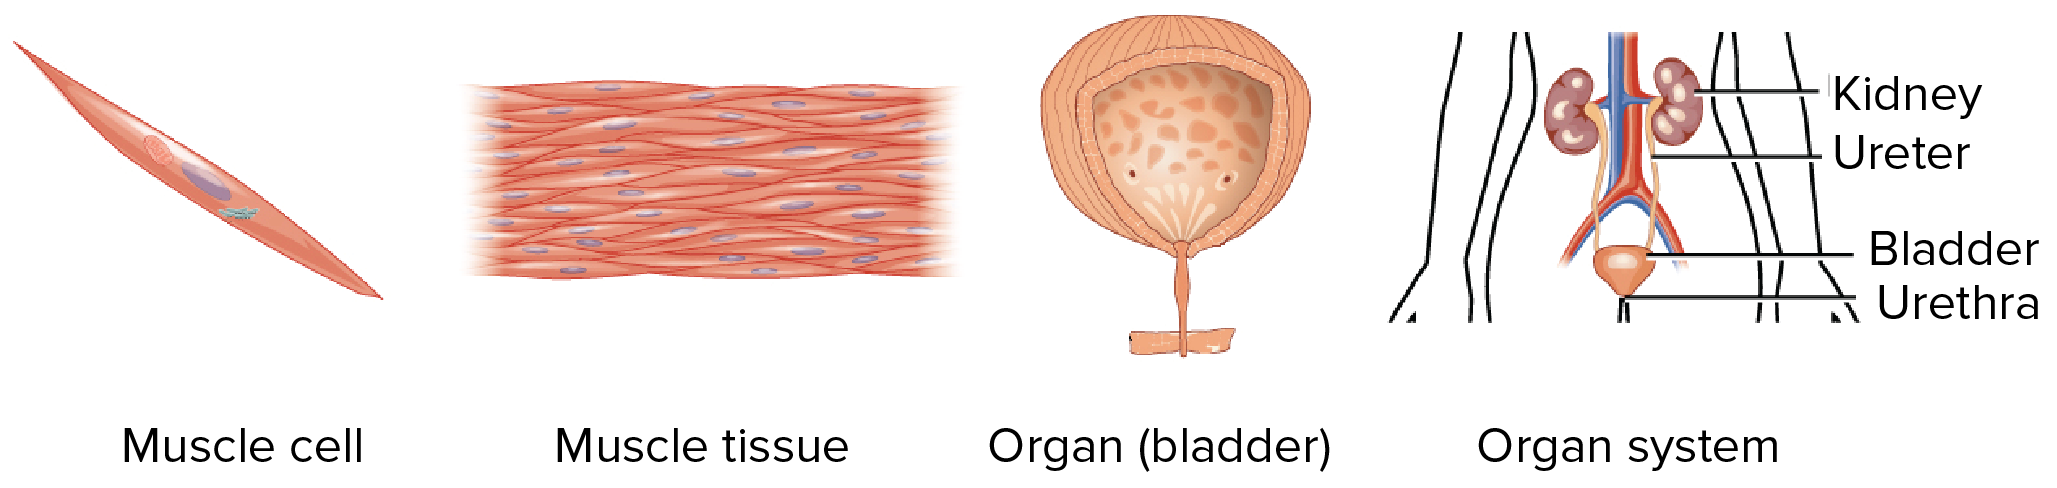 Tissues Organs Organ Systems Article Khan Academy